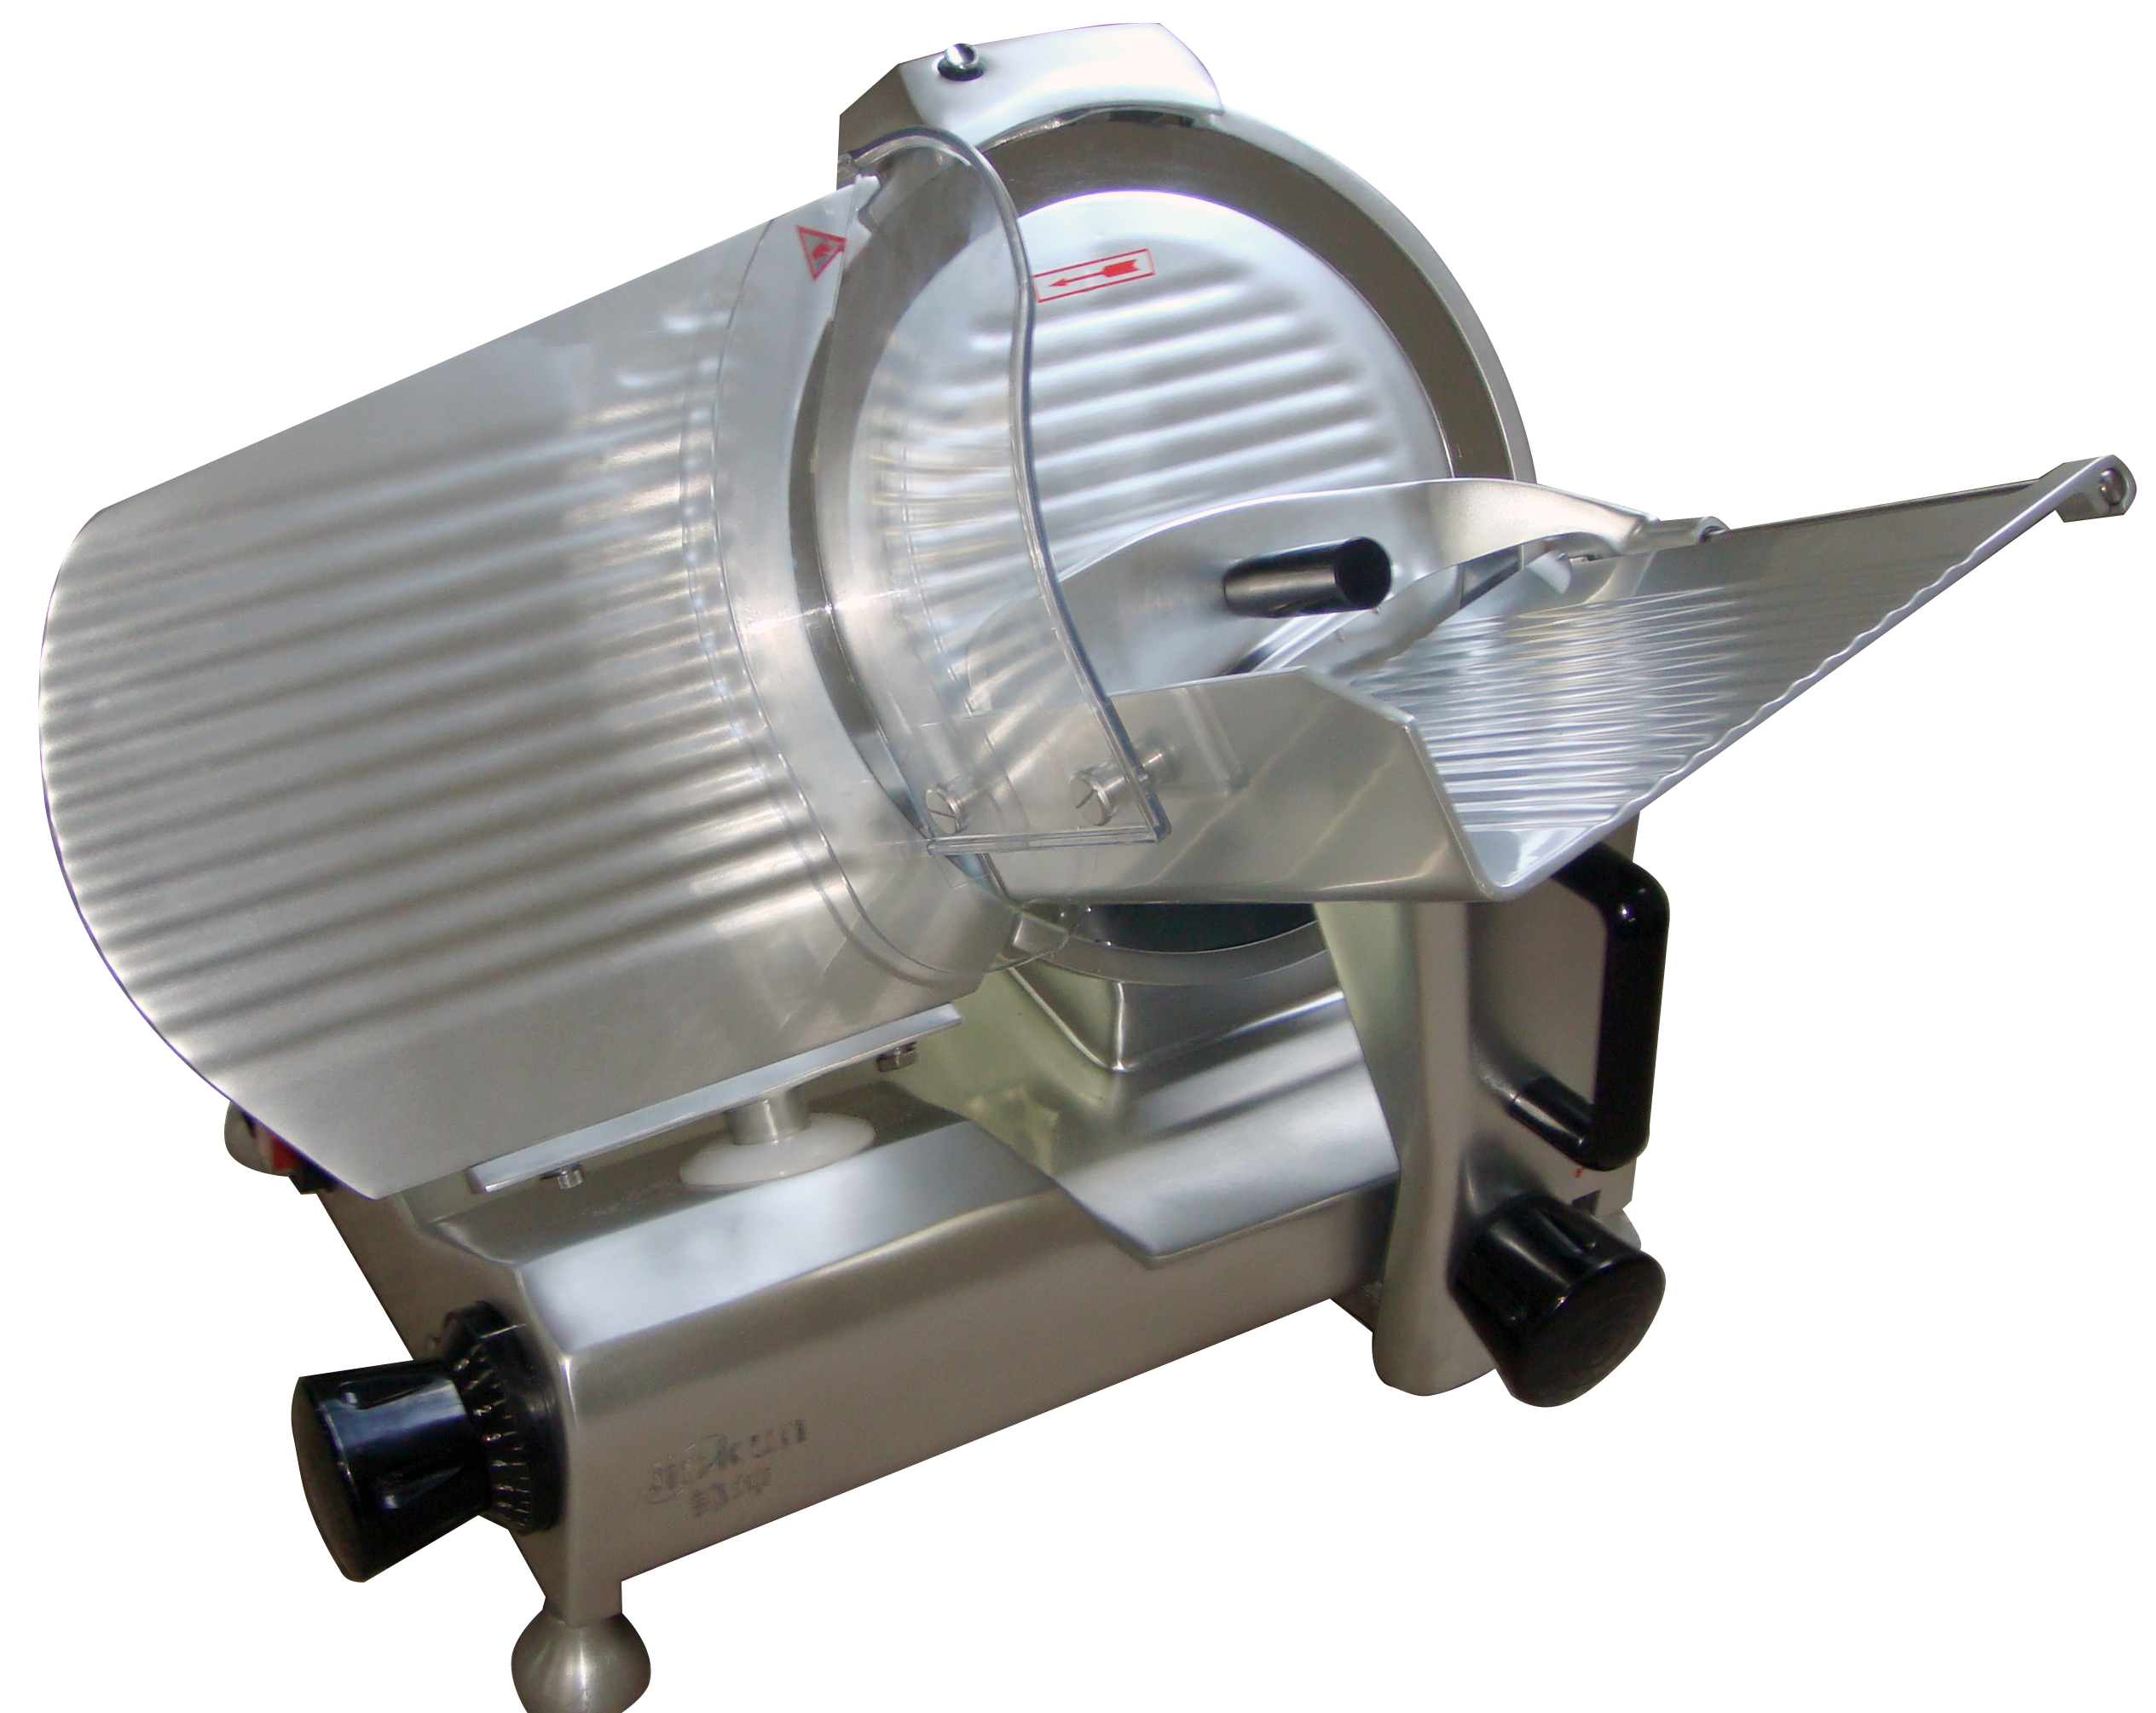 JK-300 Meat Slicer